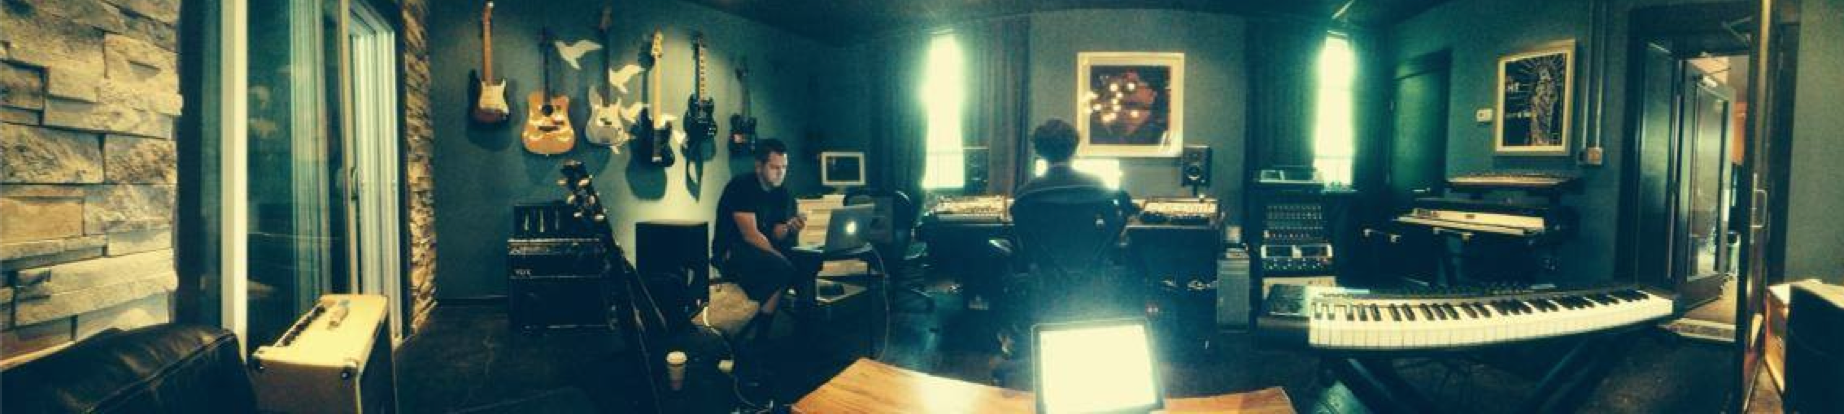 Kevin and Steve working hard on the new songs!